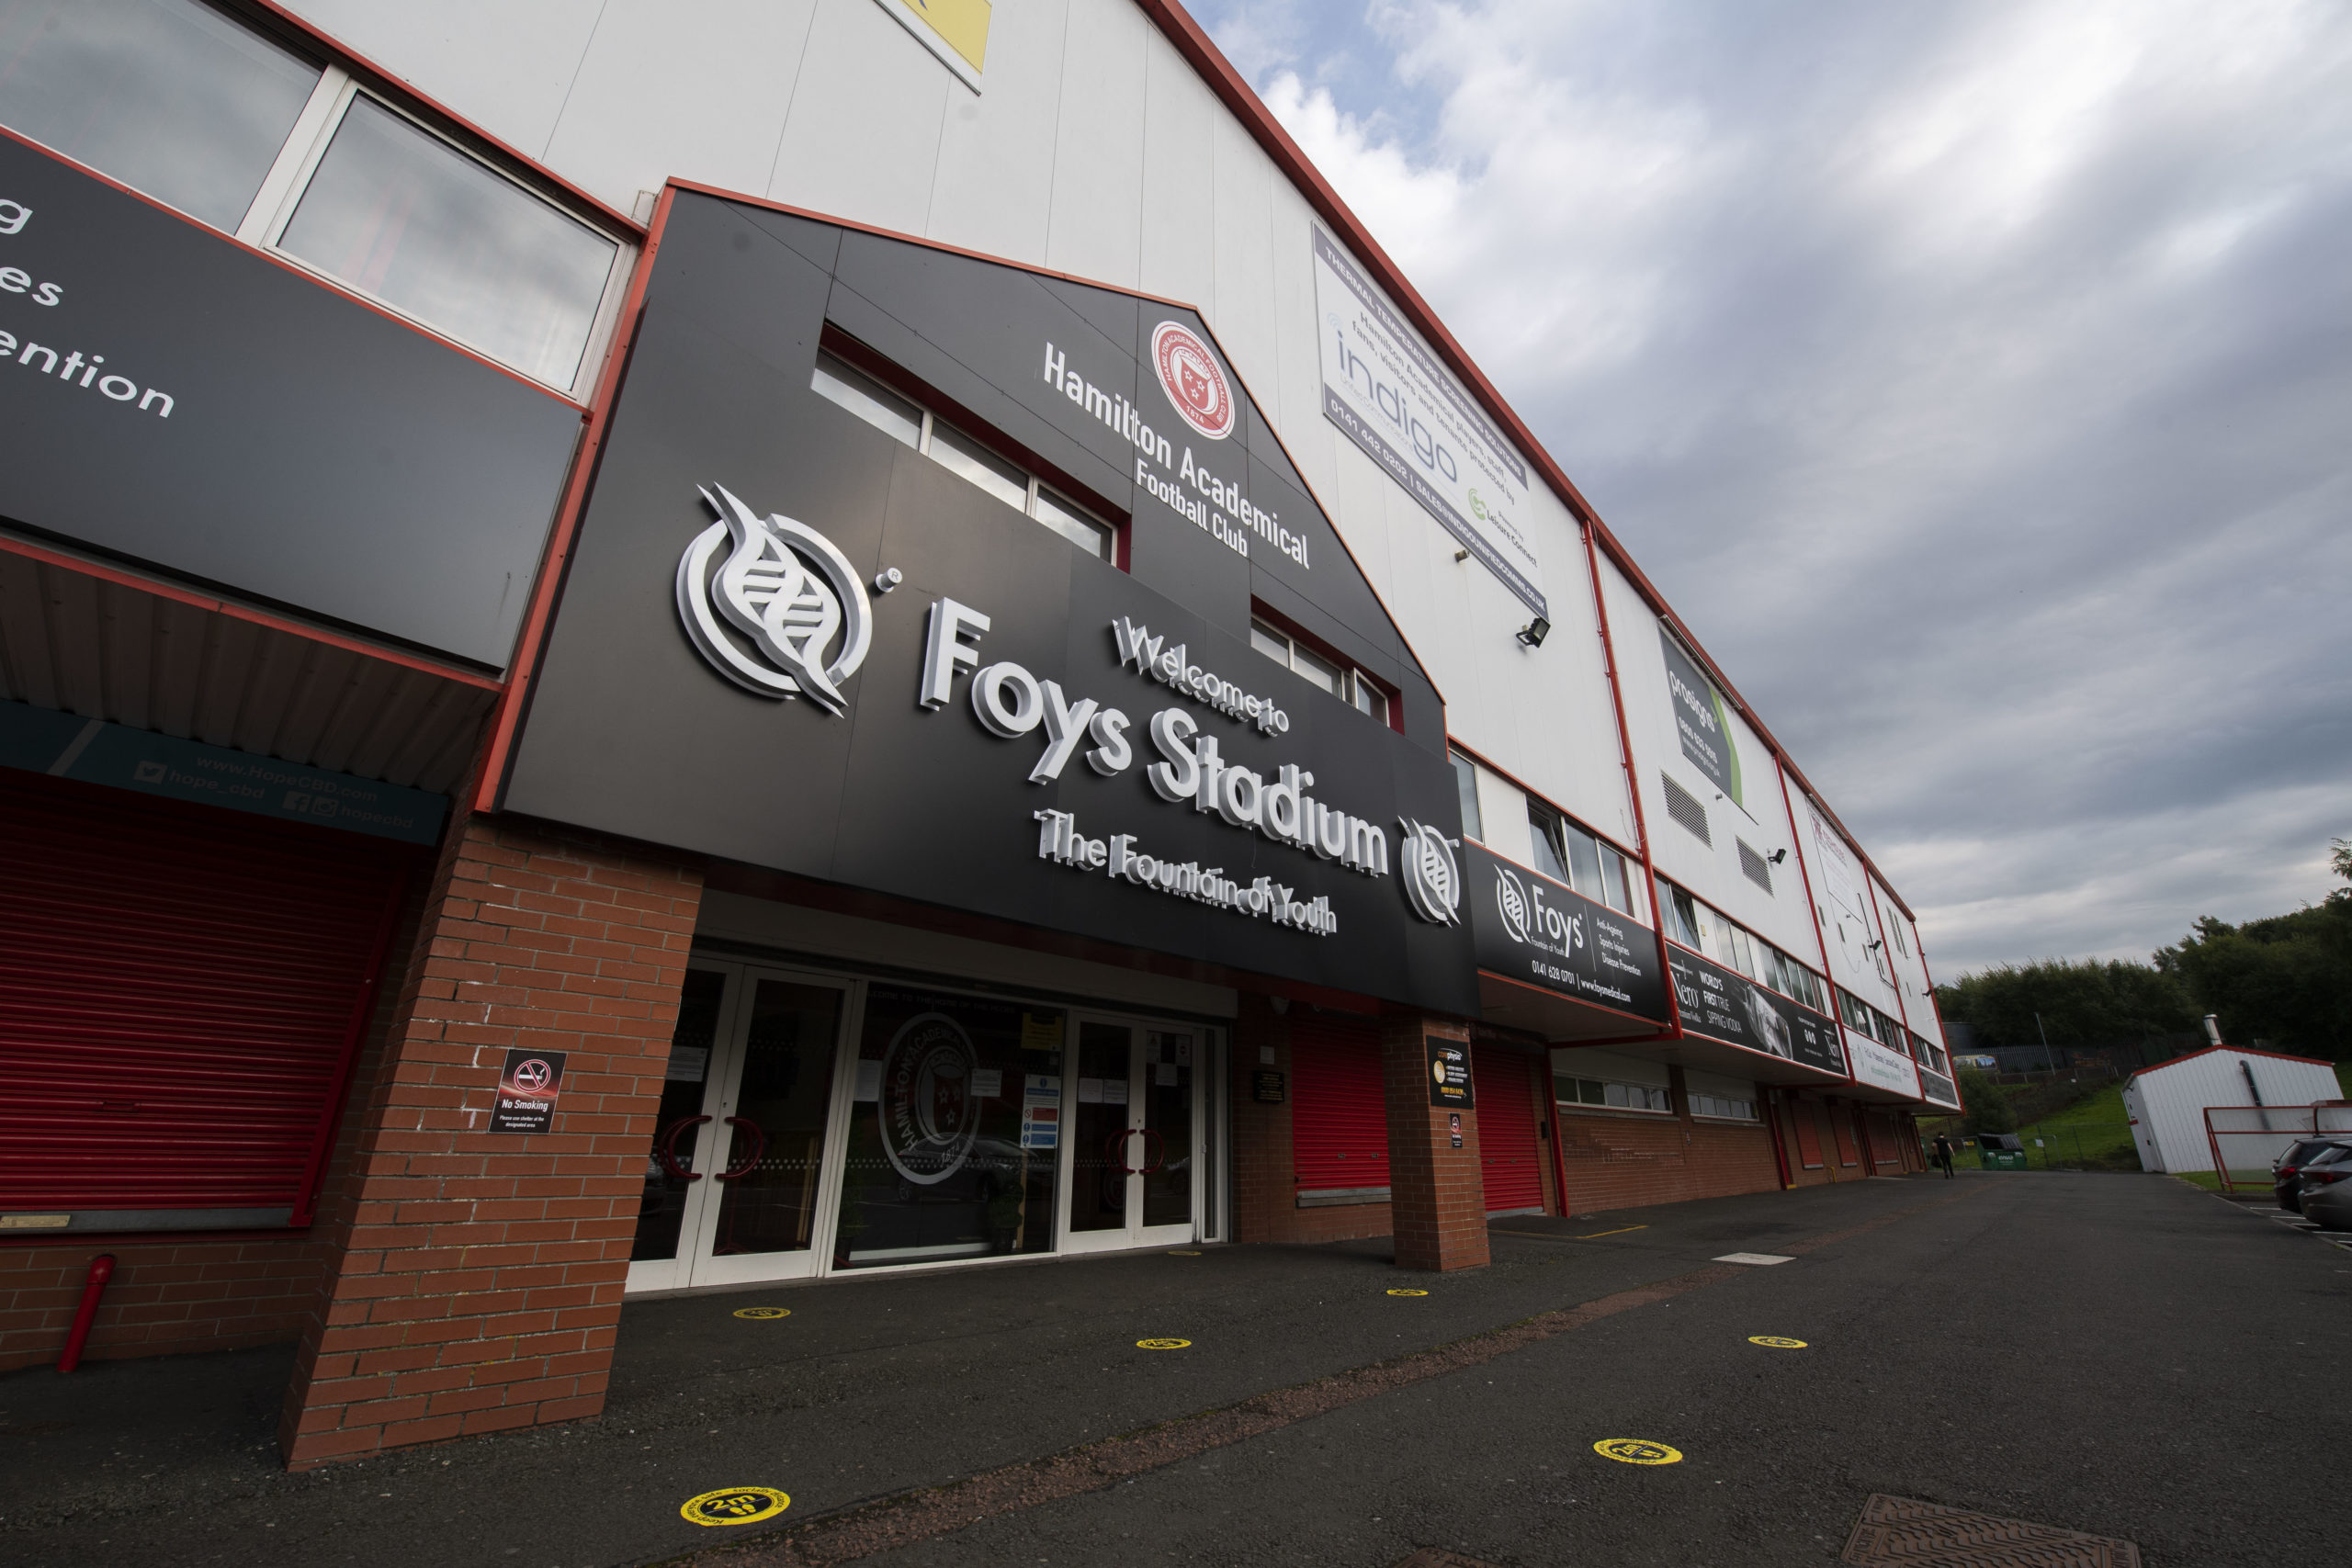 Celtic will visit Hamilton on Boxing Day